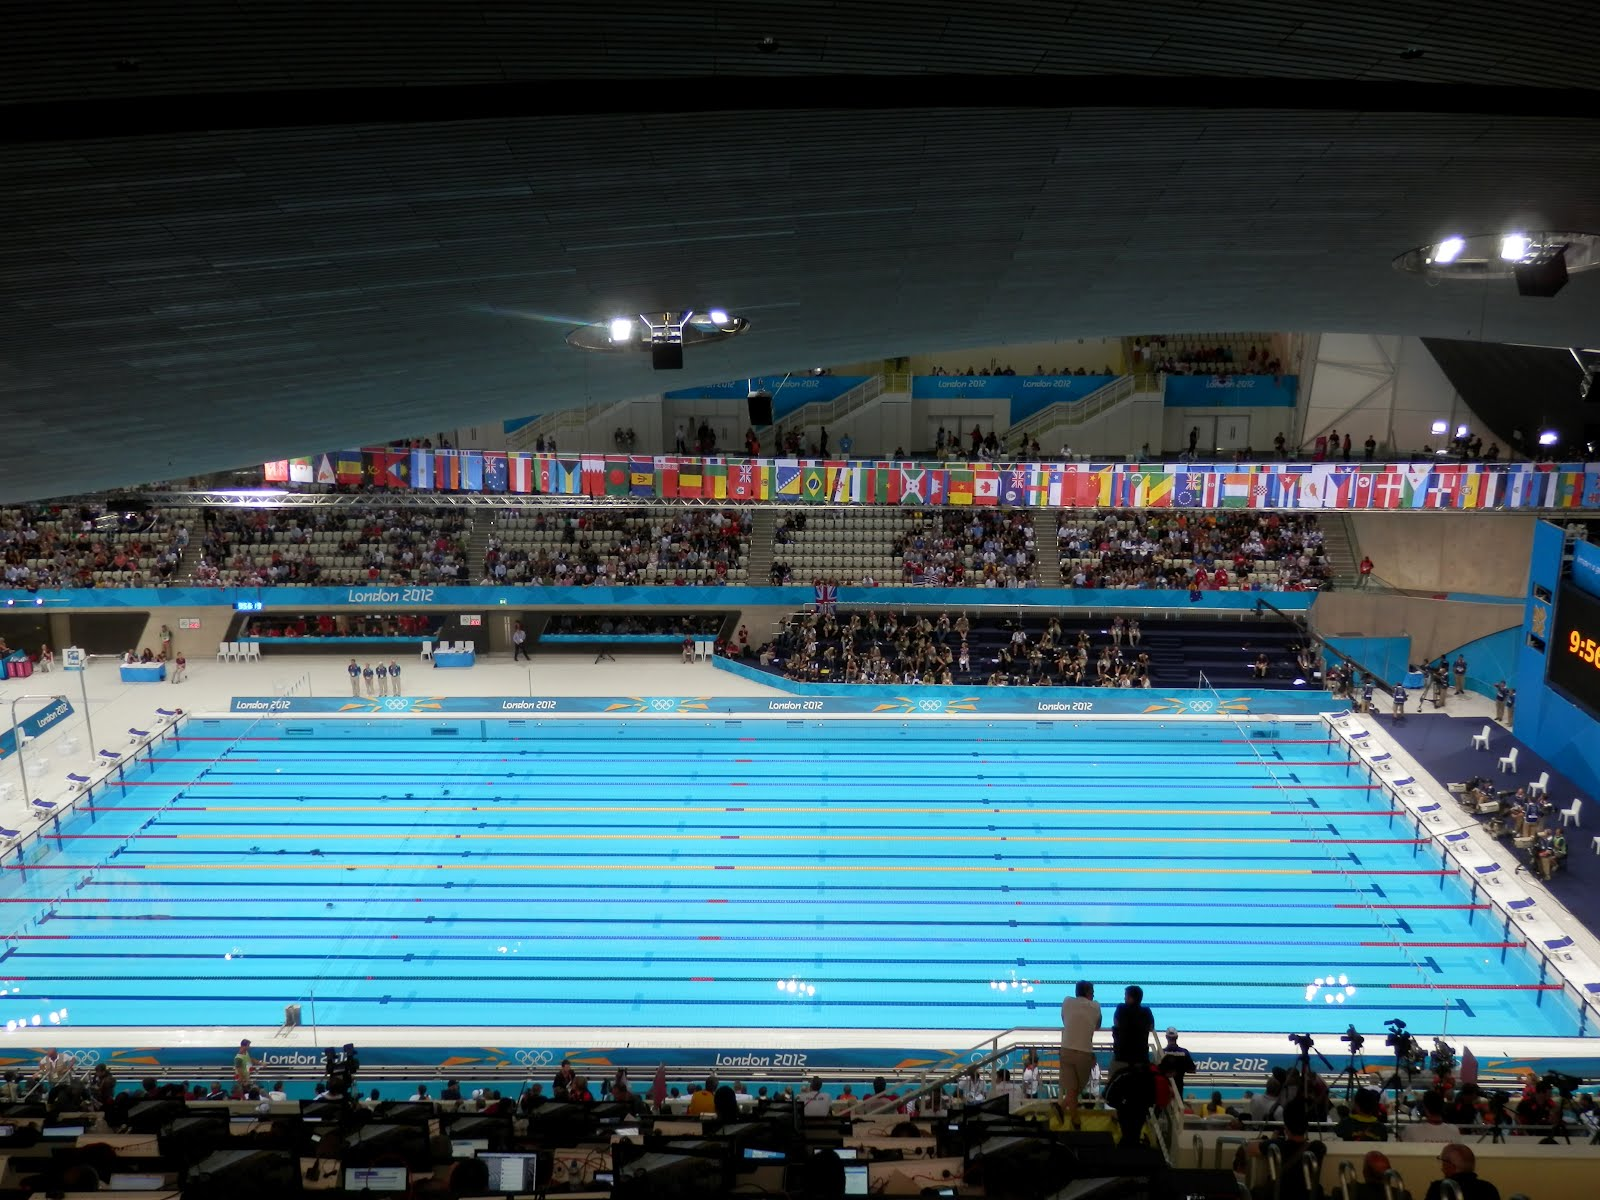 Olympic Swimming Pool 2012: Scott Says ...: A Good Sunday Morning For Charlotte Swimmers